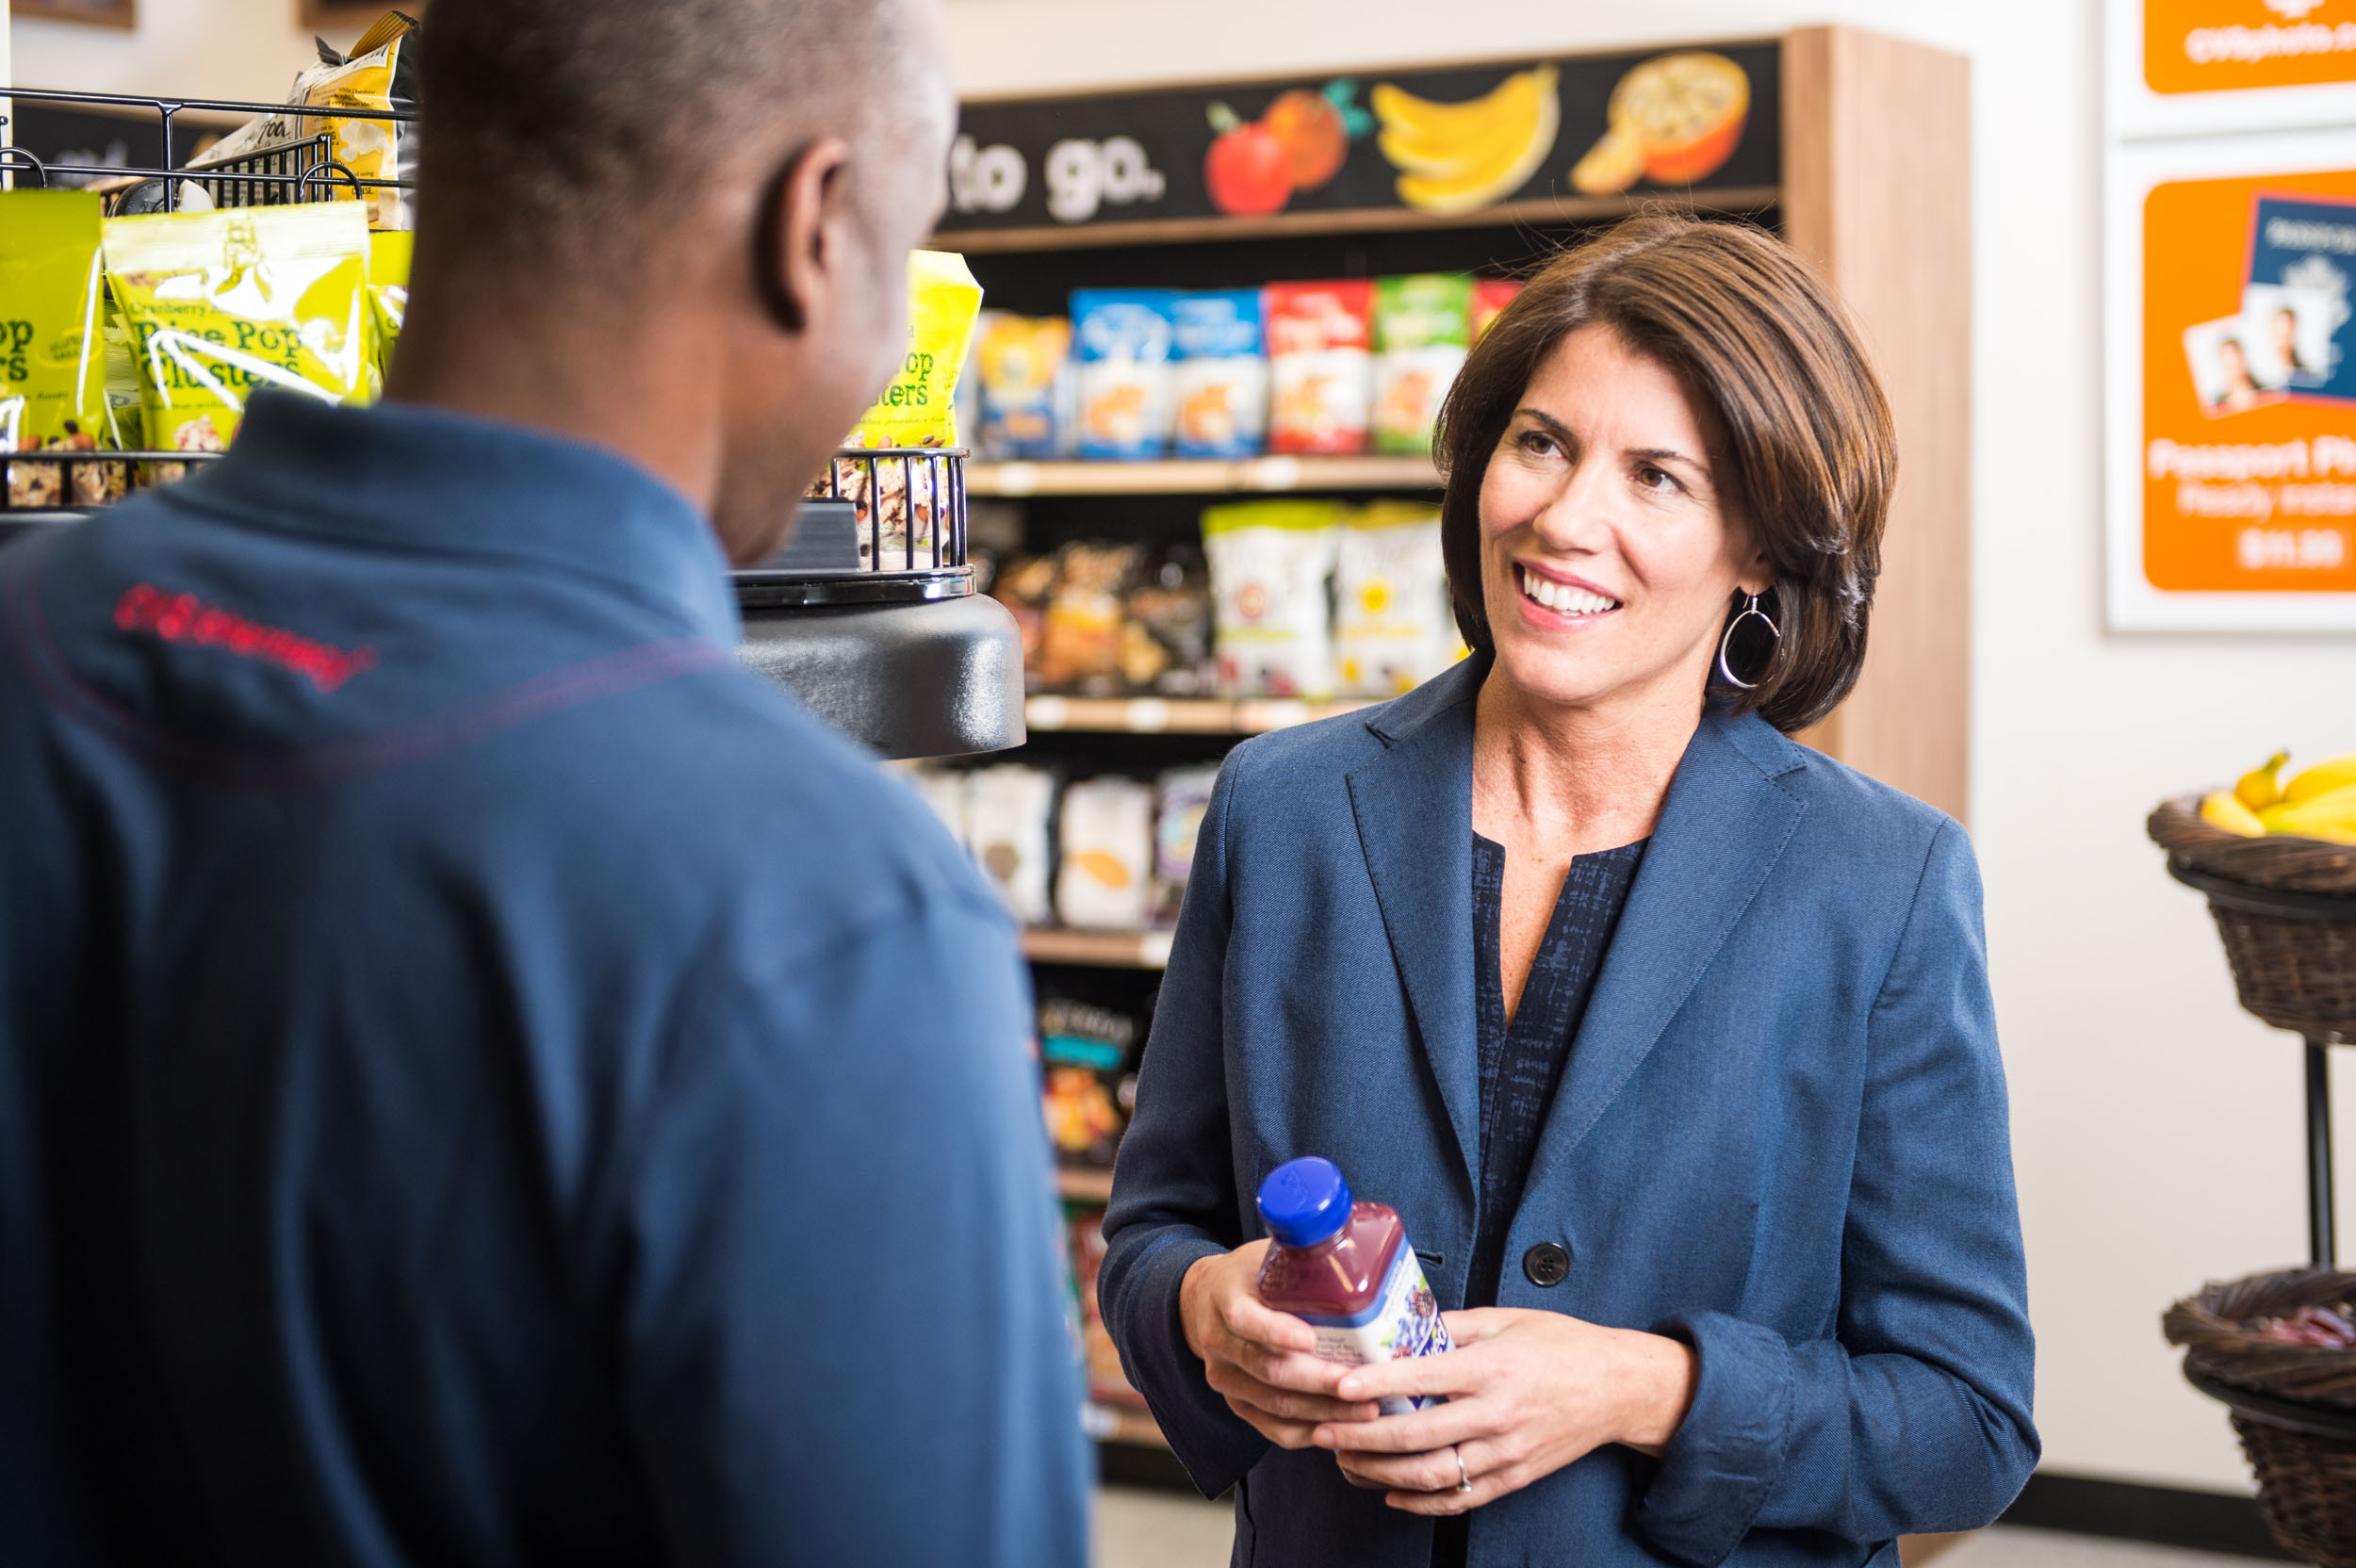 Maura Wayman Photography, Photography, Corporate Photography, stock, stock images, Massachusetts, Boston, Metro West, Wellesley, CVS, Store, workers, black man, grocery, woman, Helena Foulke, co-workers,